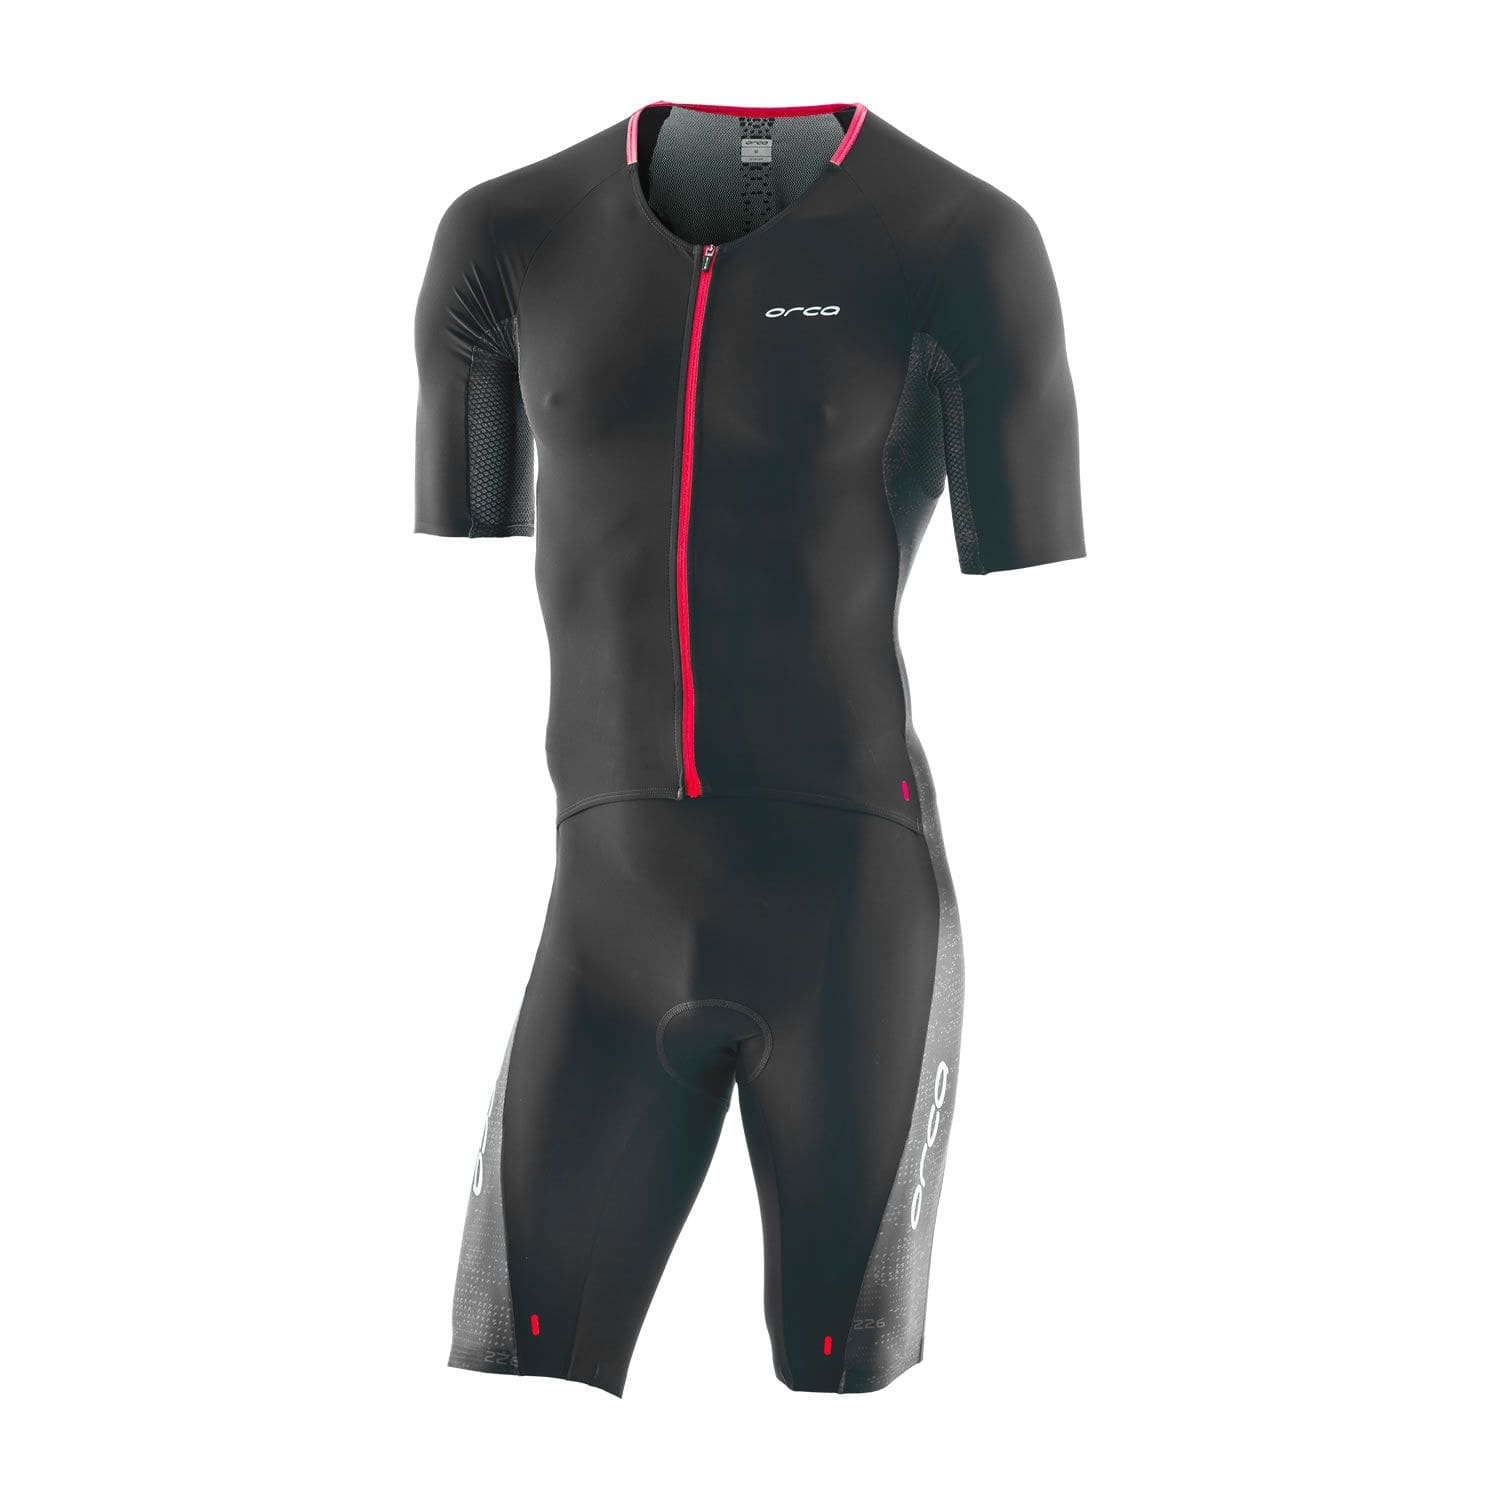 226 Perform Aero Race Suit Herren - Orca - schwarz/orange